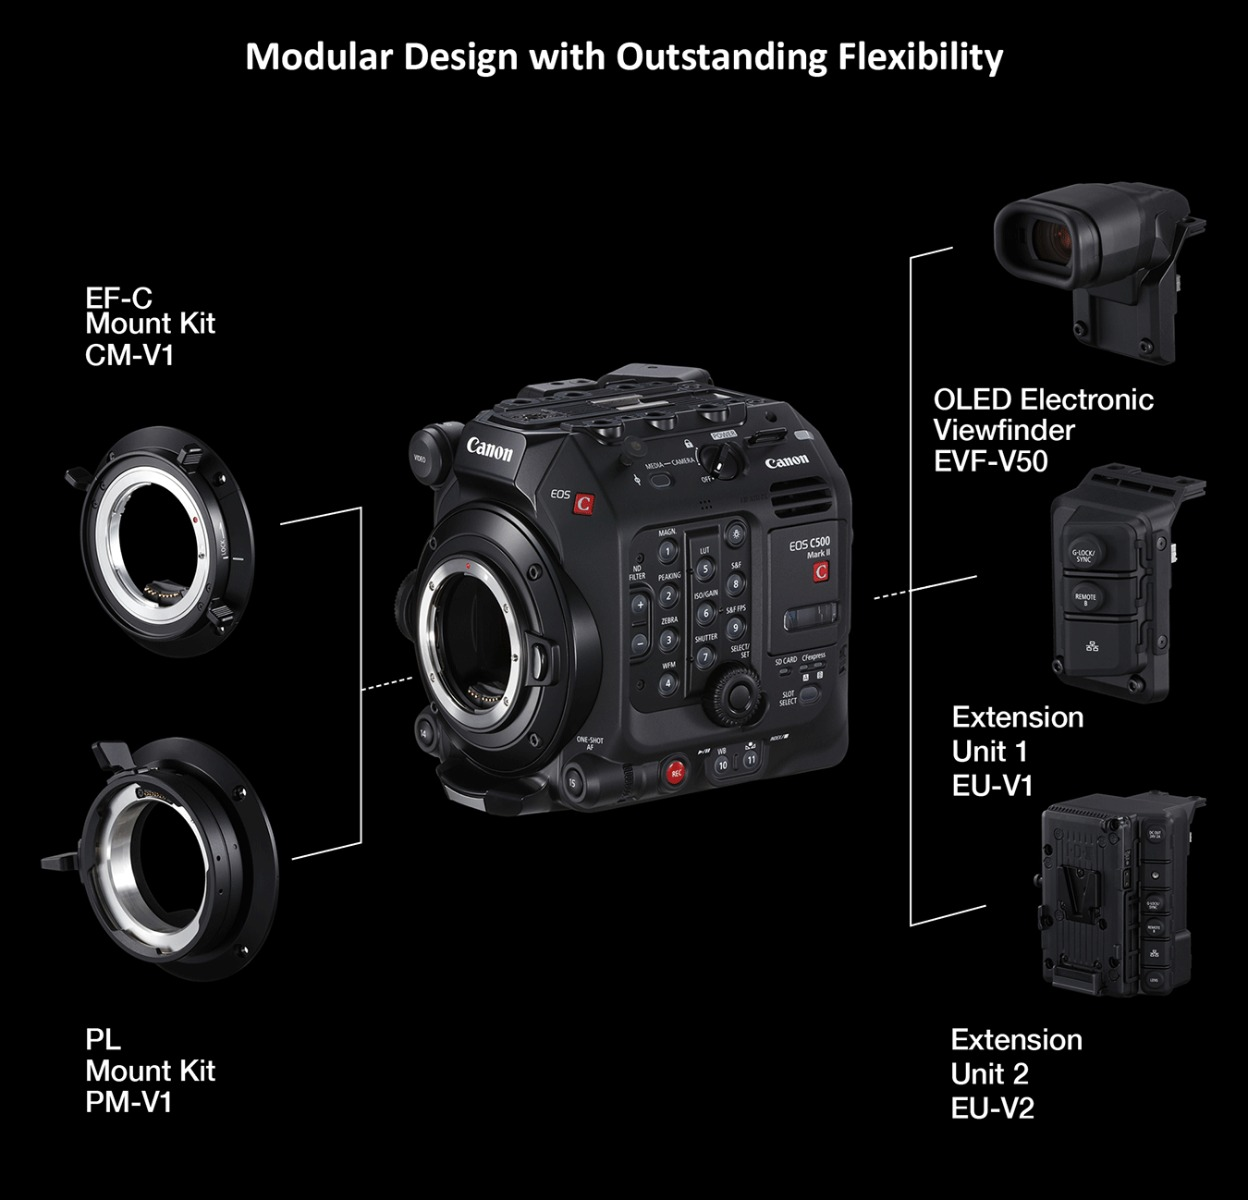 EOS C500 Mark II Optional Extension Units